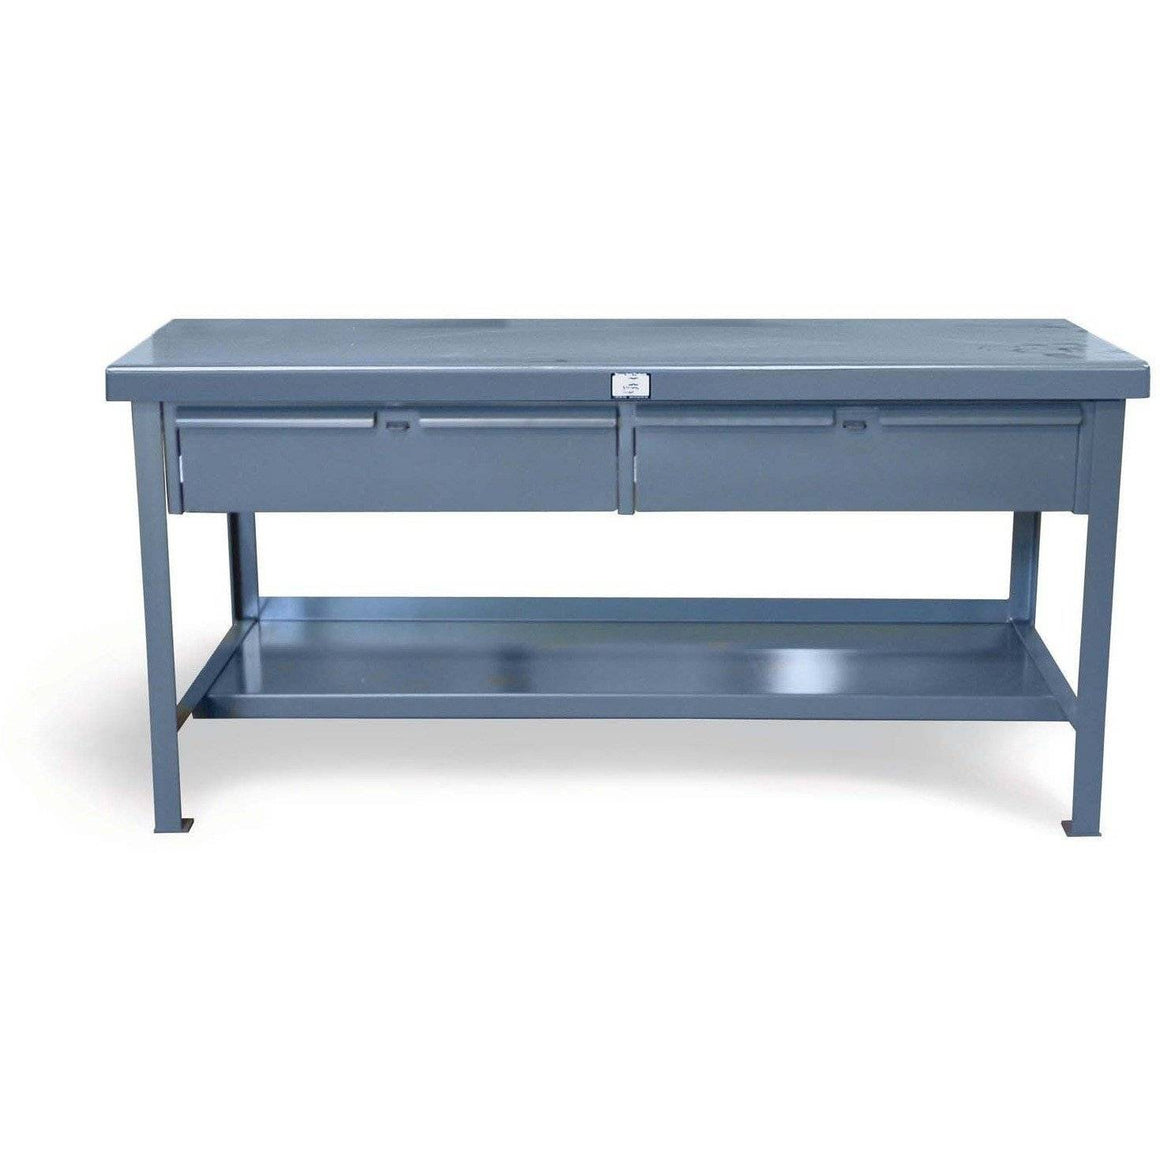 Strong Hold Shop Table with 2 Drawers T4830-2DB